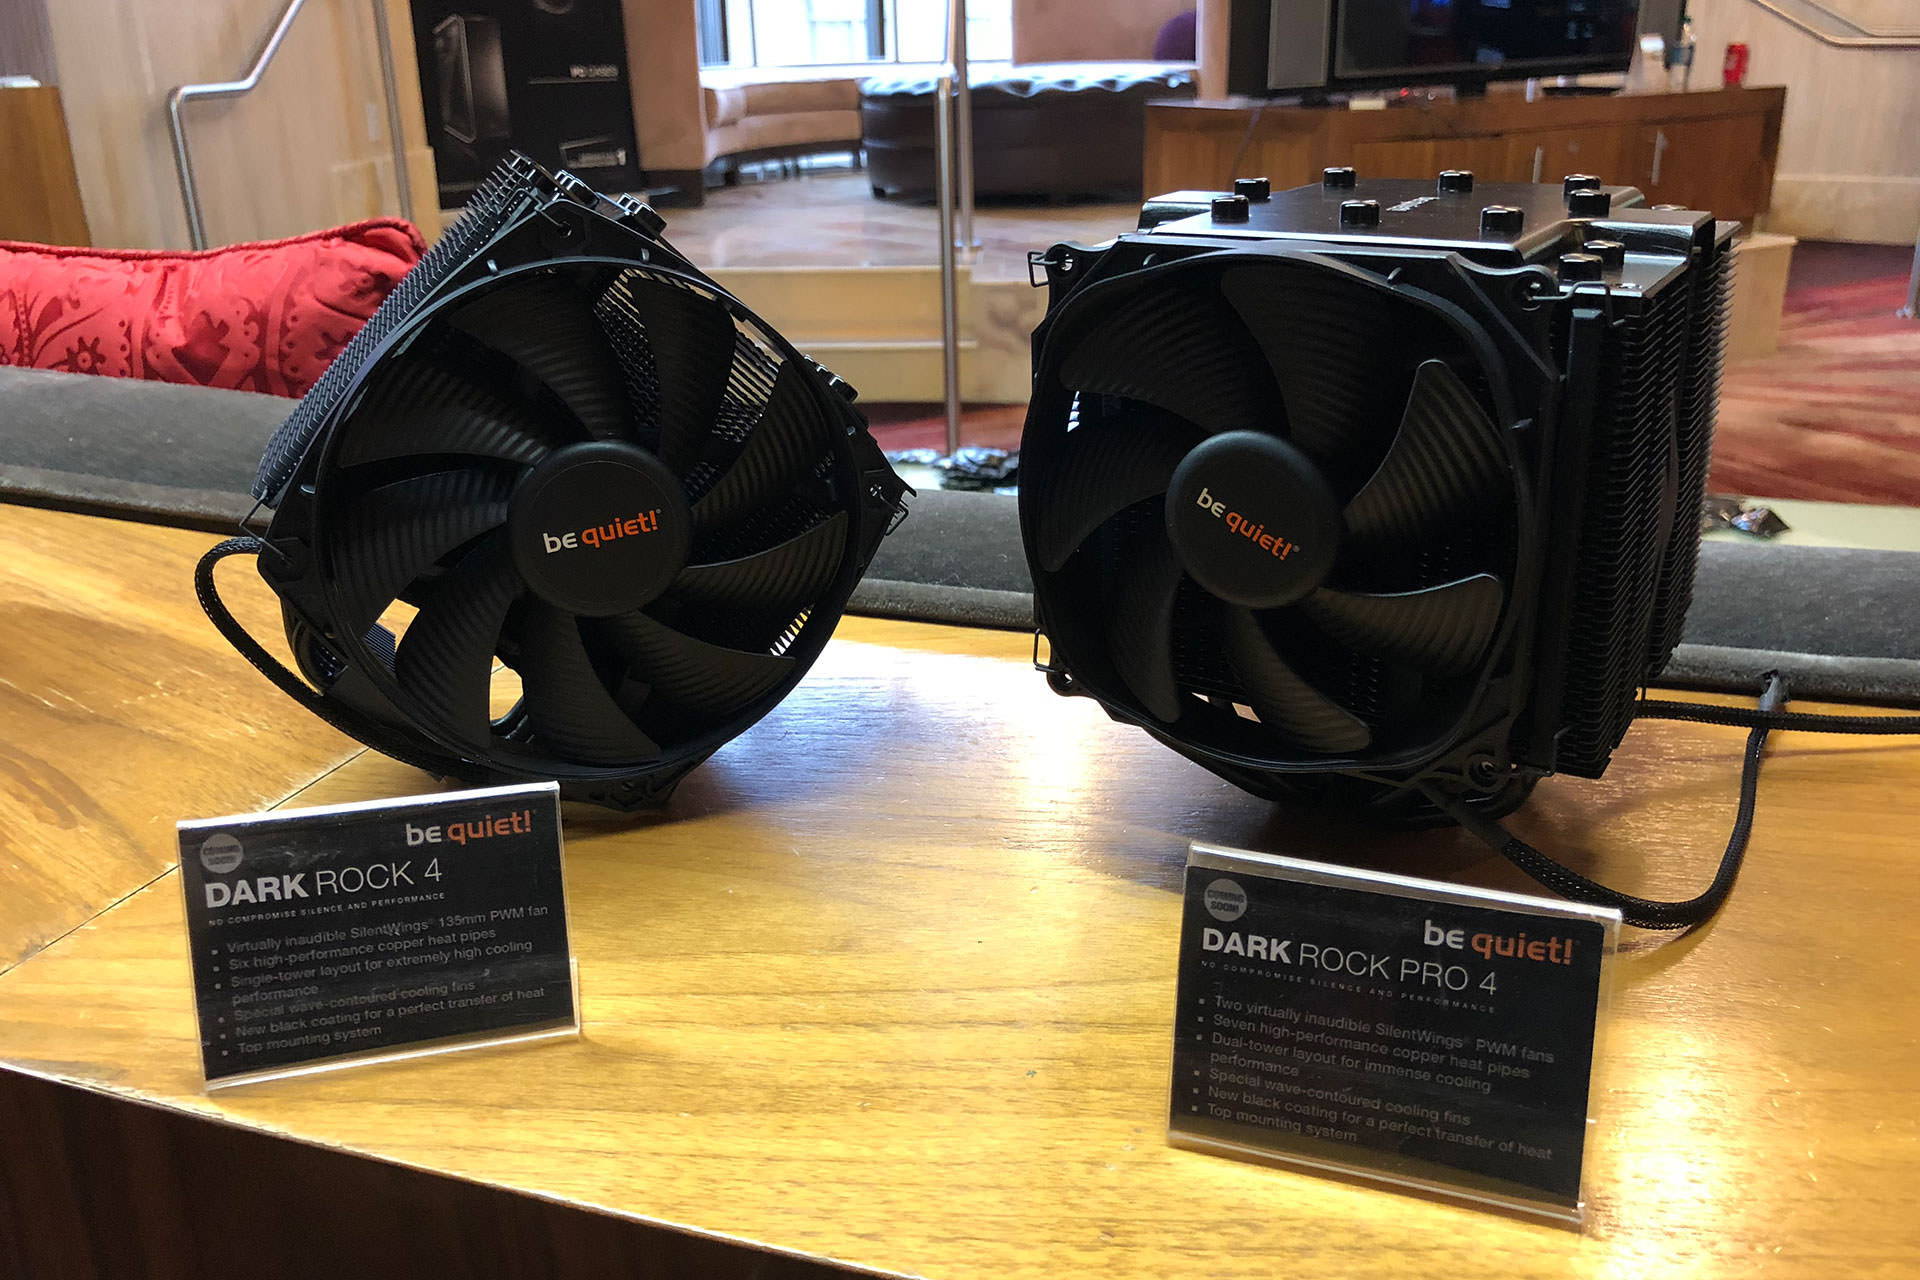 CES 2018: be quiet! shows Dark Rock 4 and Dark Rock Pro 4 CPU coolers with improved mounting